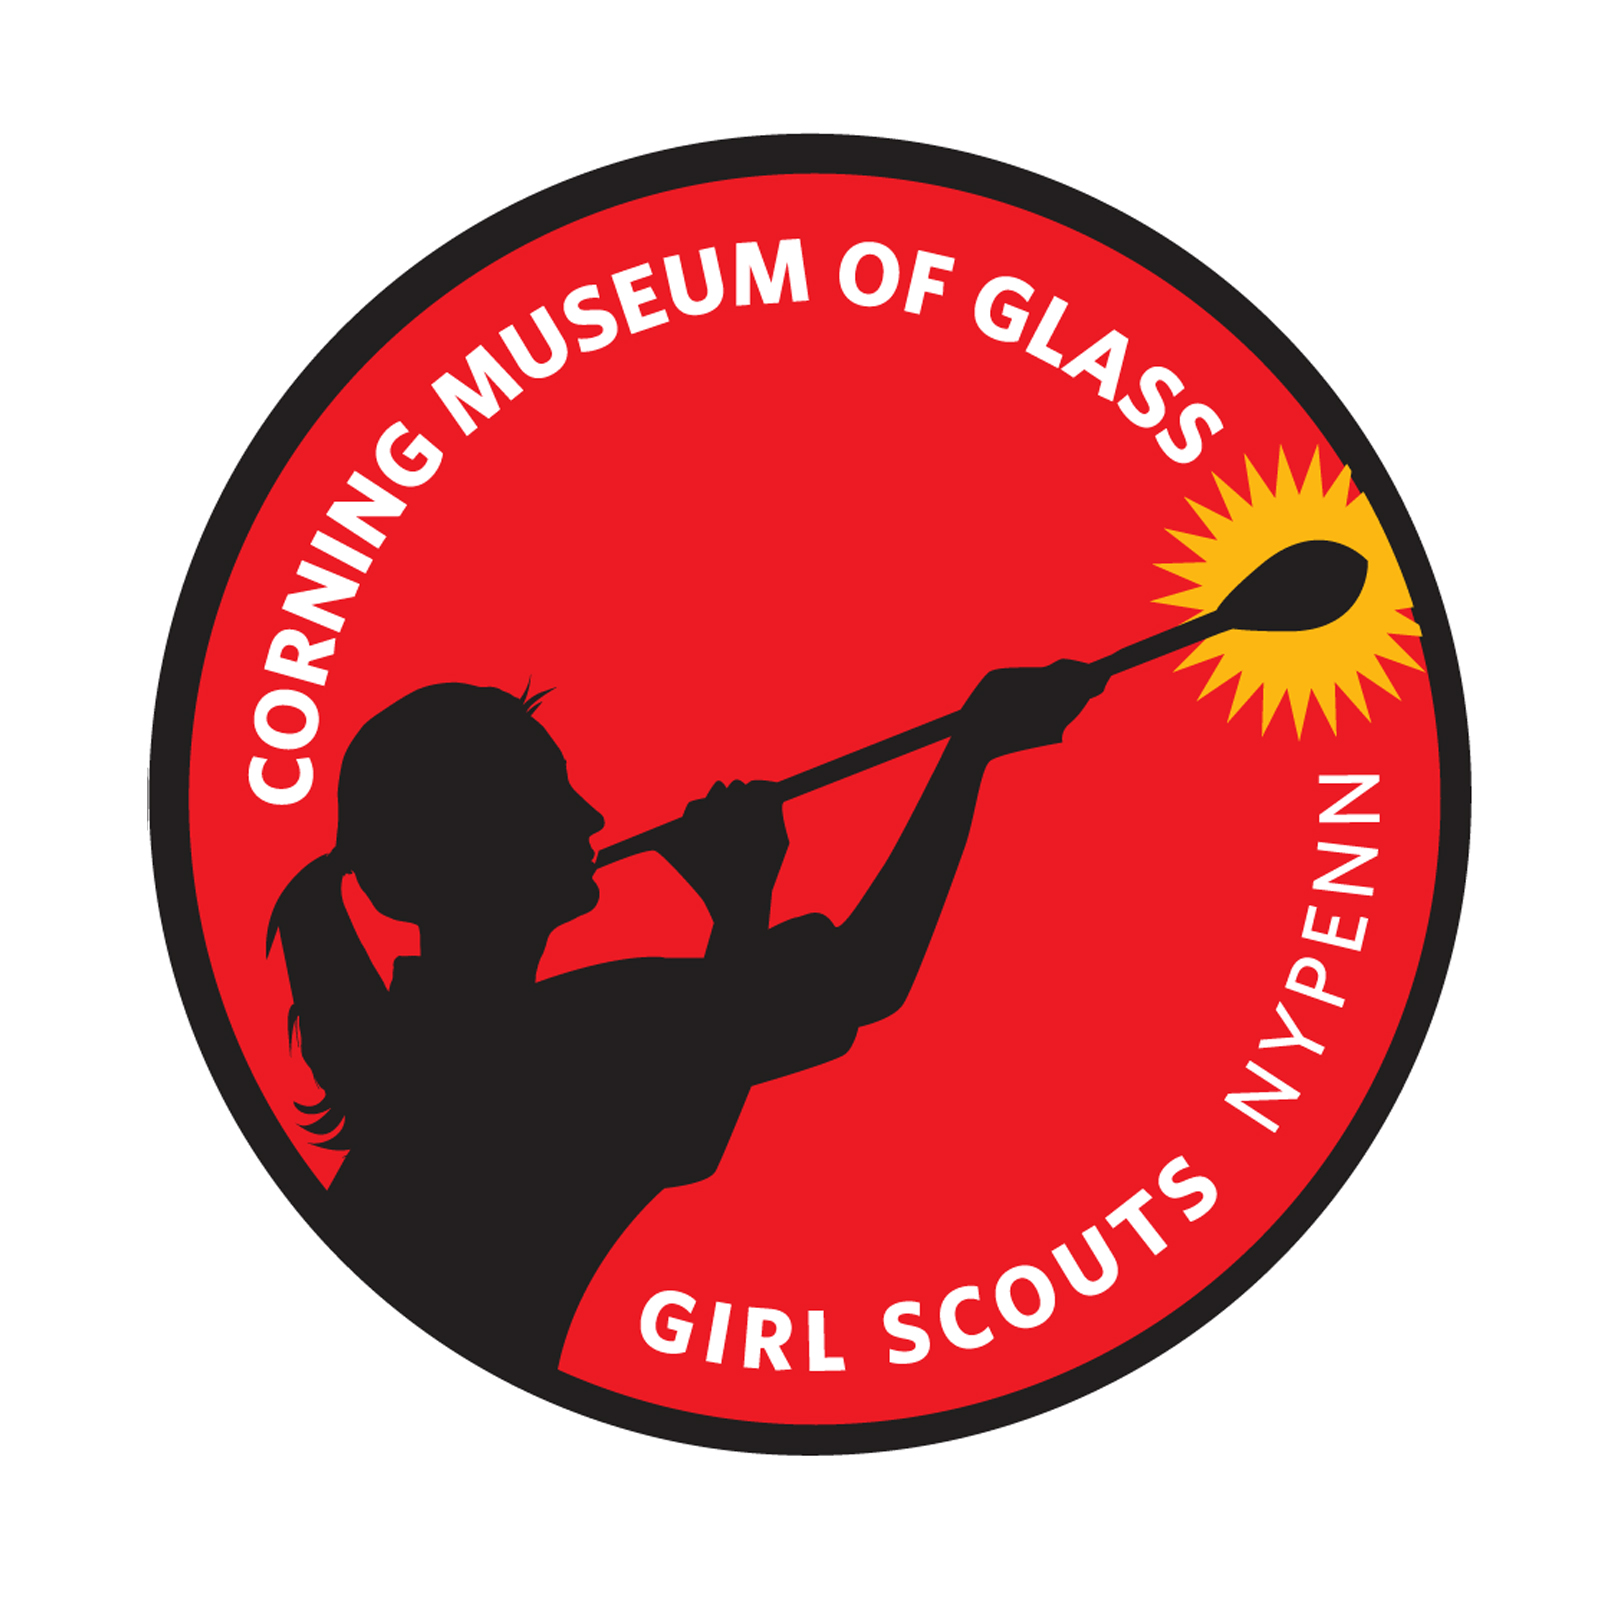 1600x1600 Girl Scouts Corning Museum Of Glass